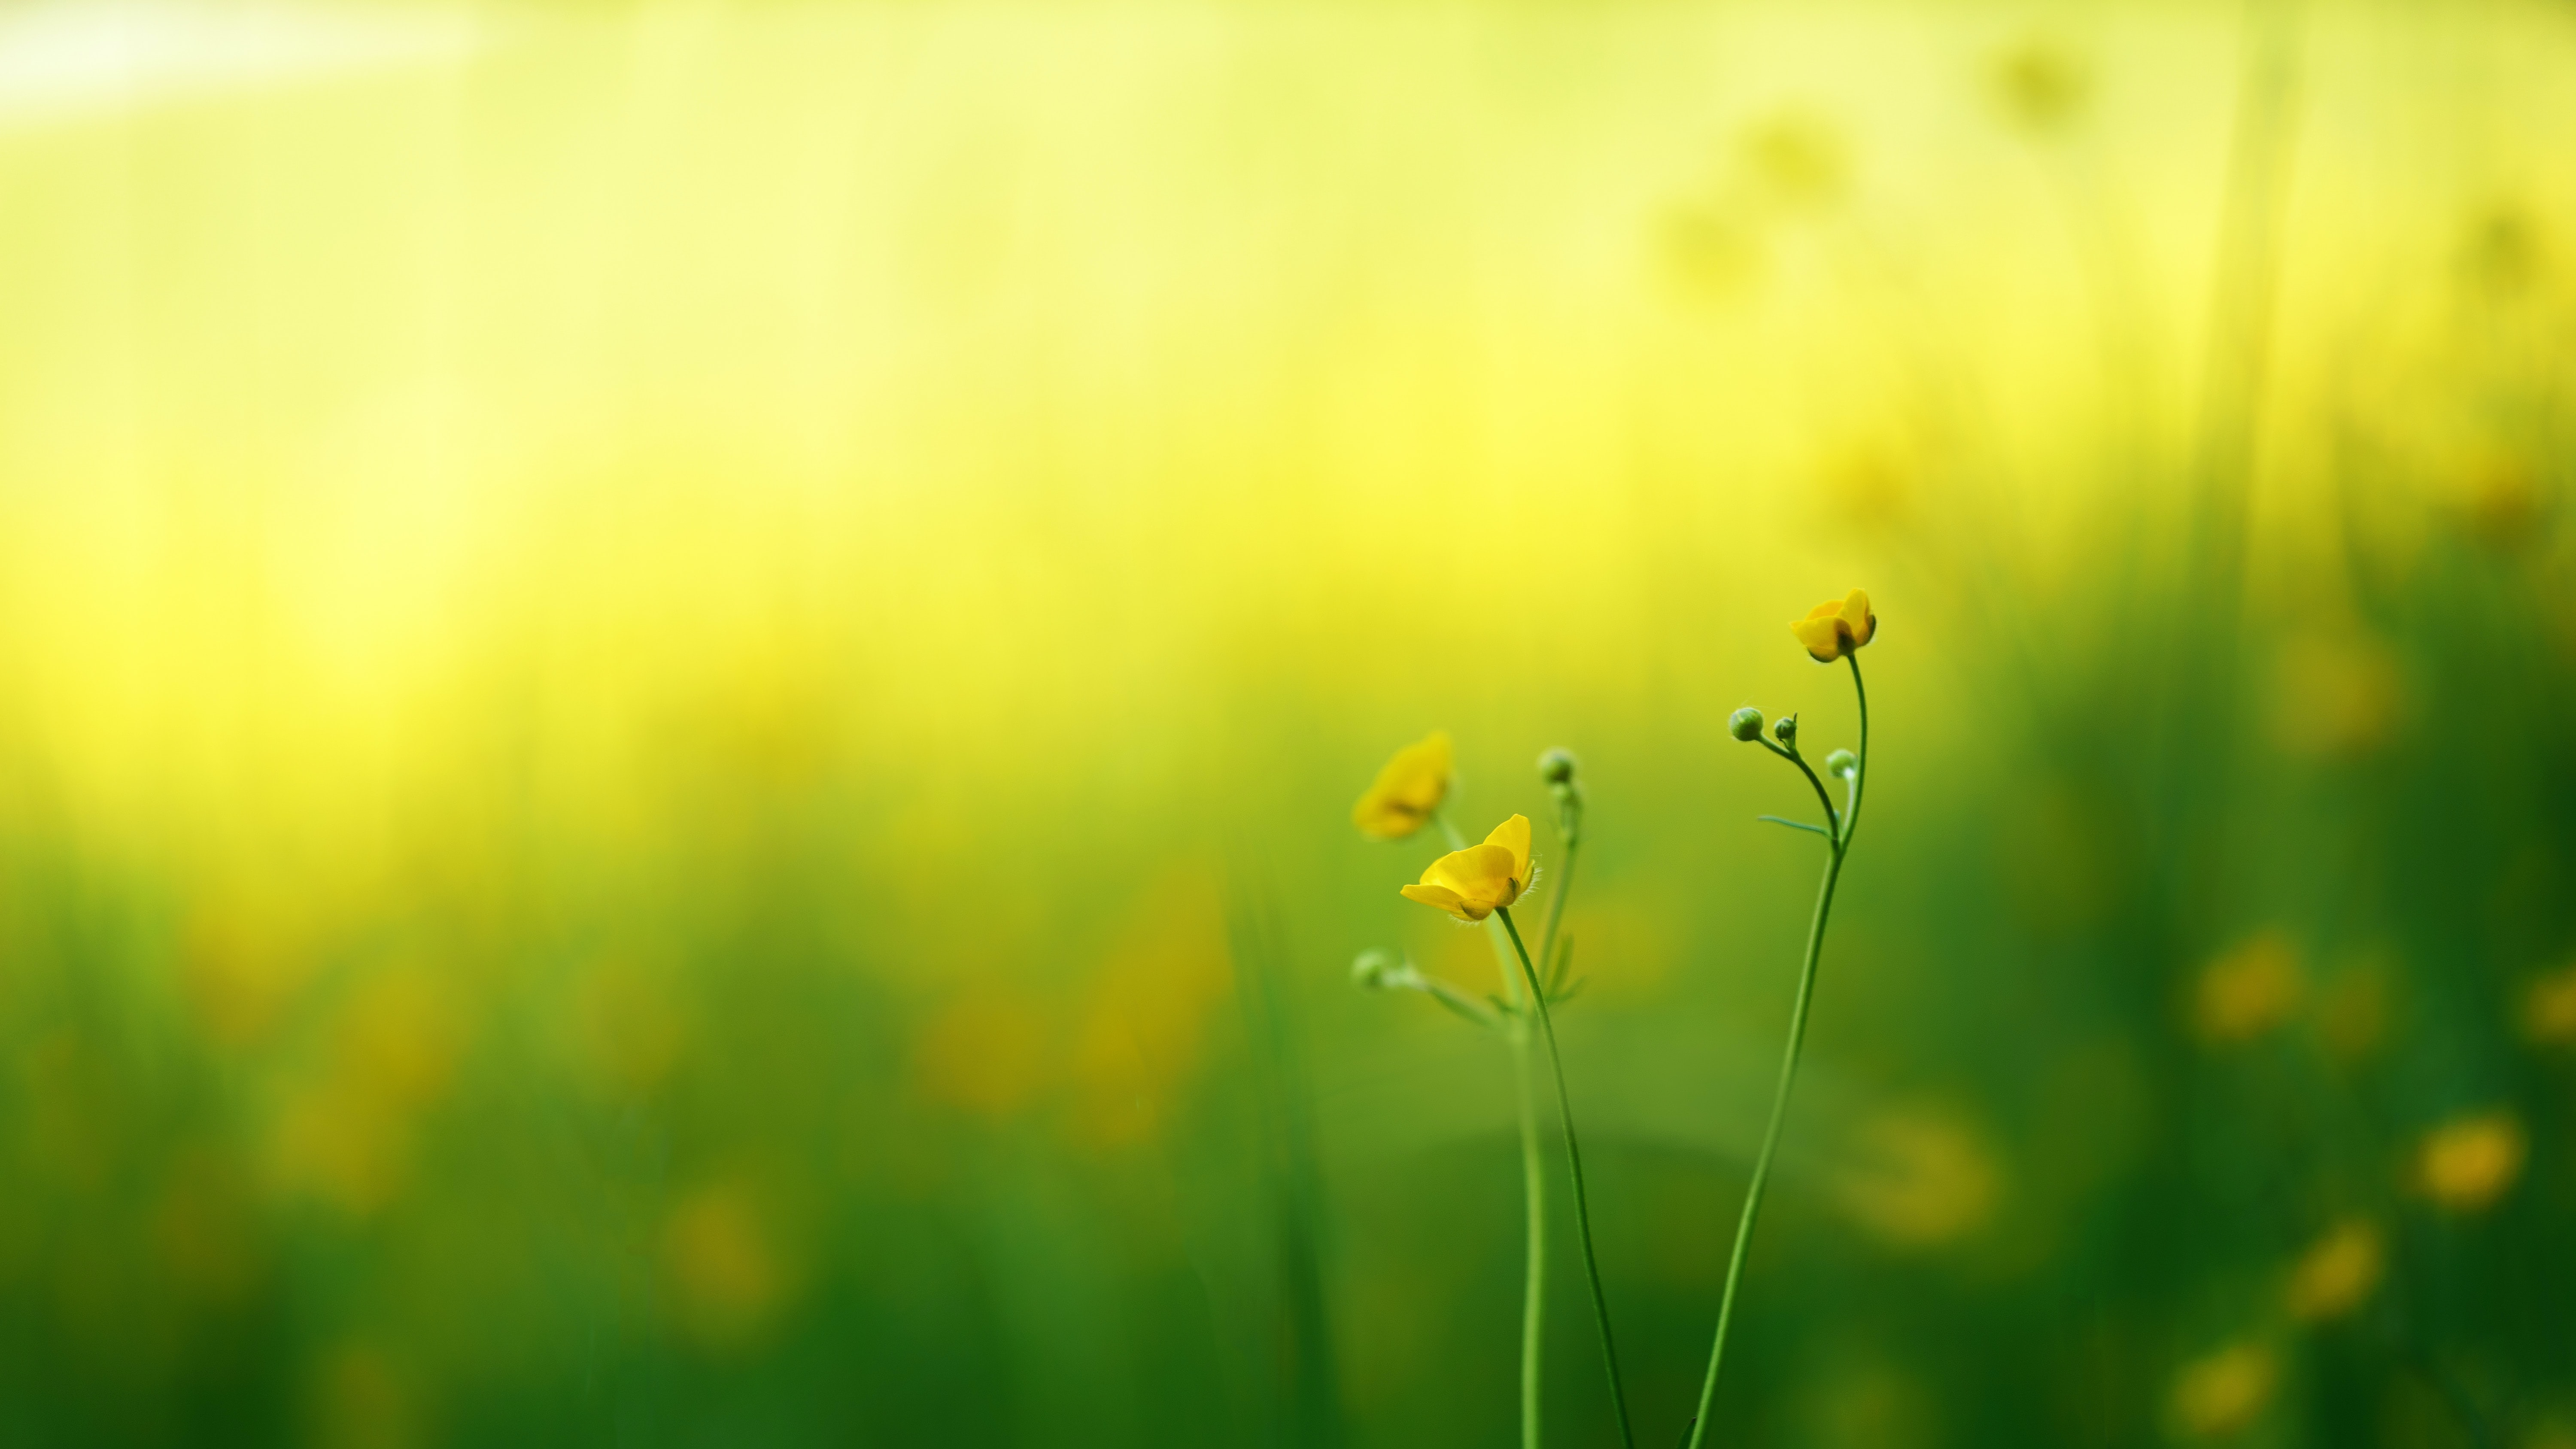 Several buttercup flowers against a blurry background of a meadow